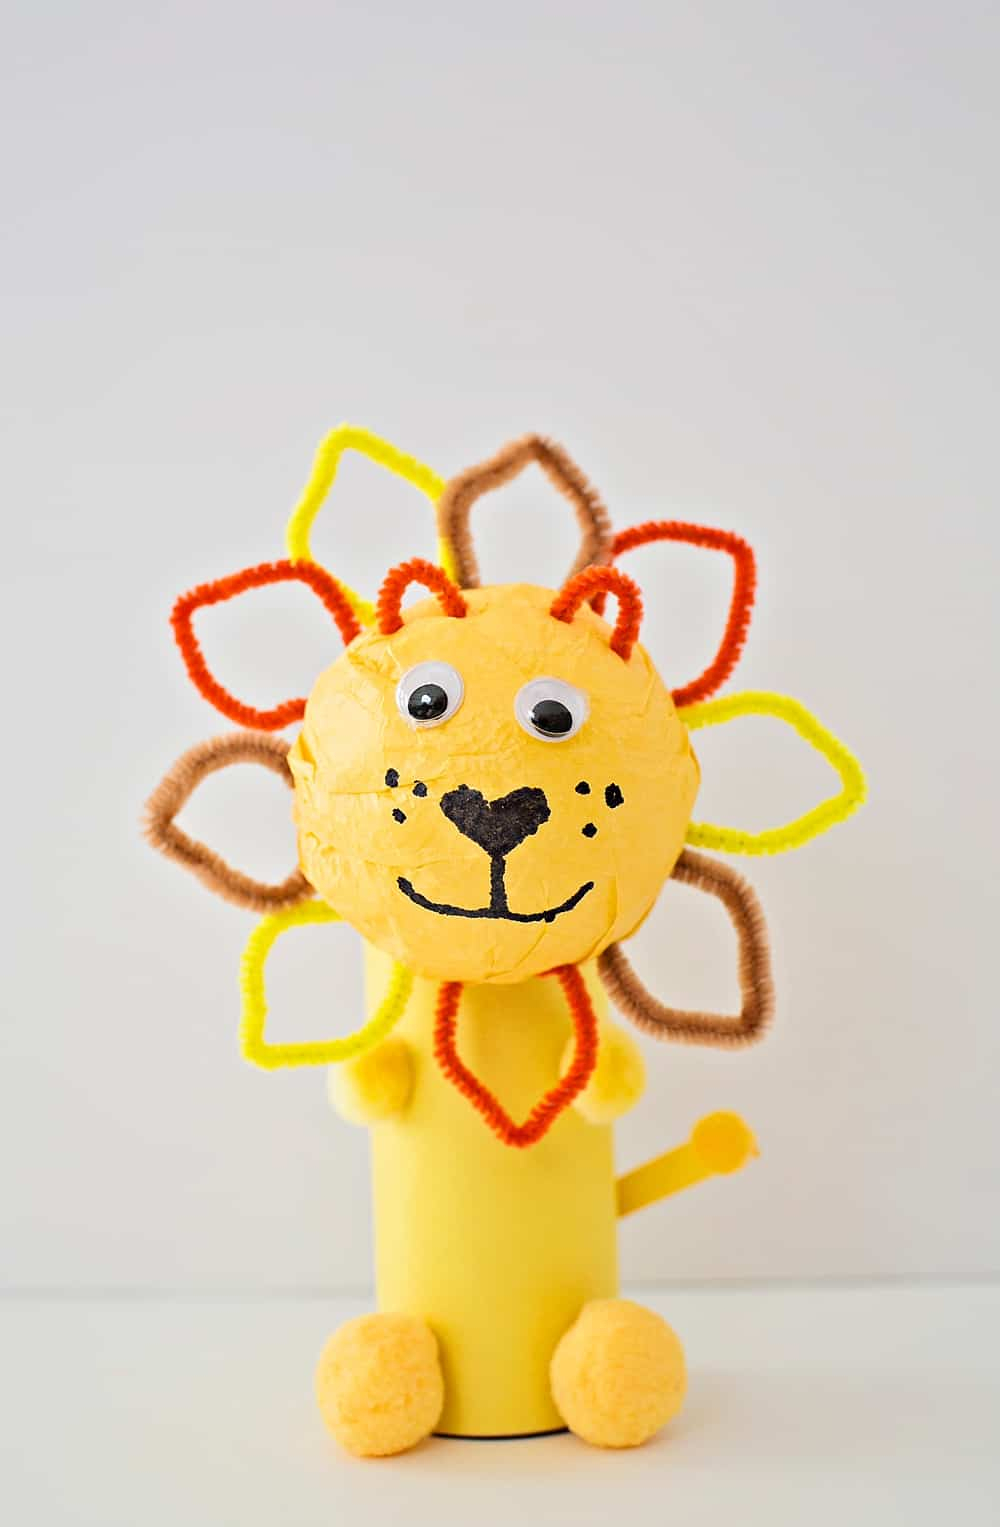 Simple Crafts Using Paper to Add New Accessory at Home Cute Paper Tube Lion Craft Hello Wonderful